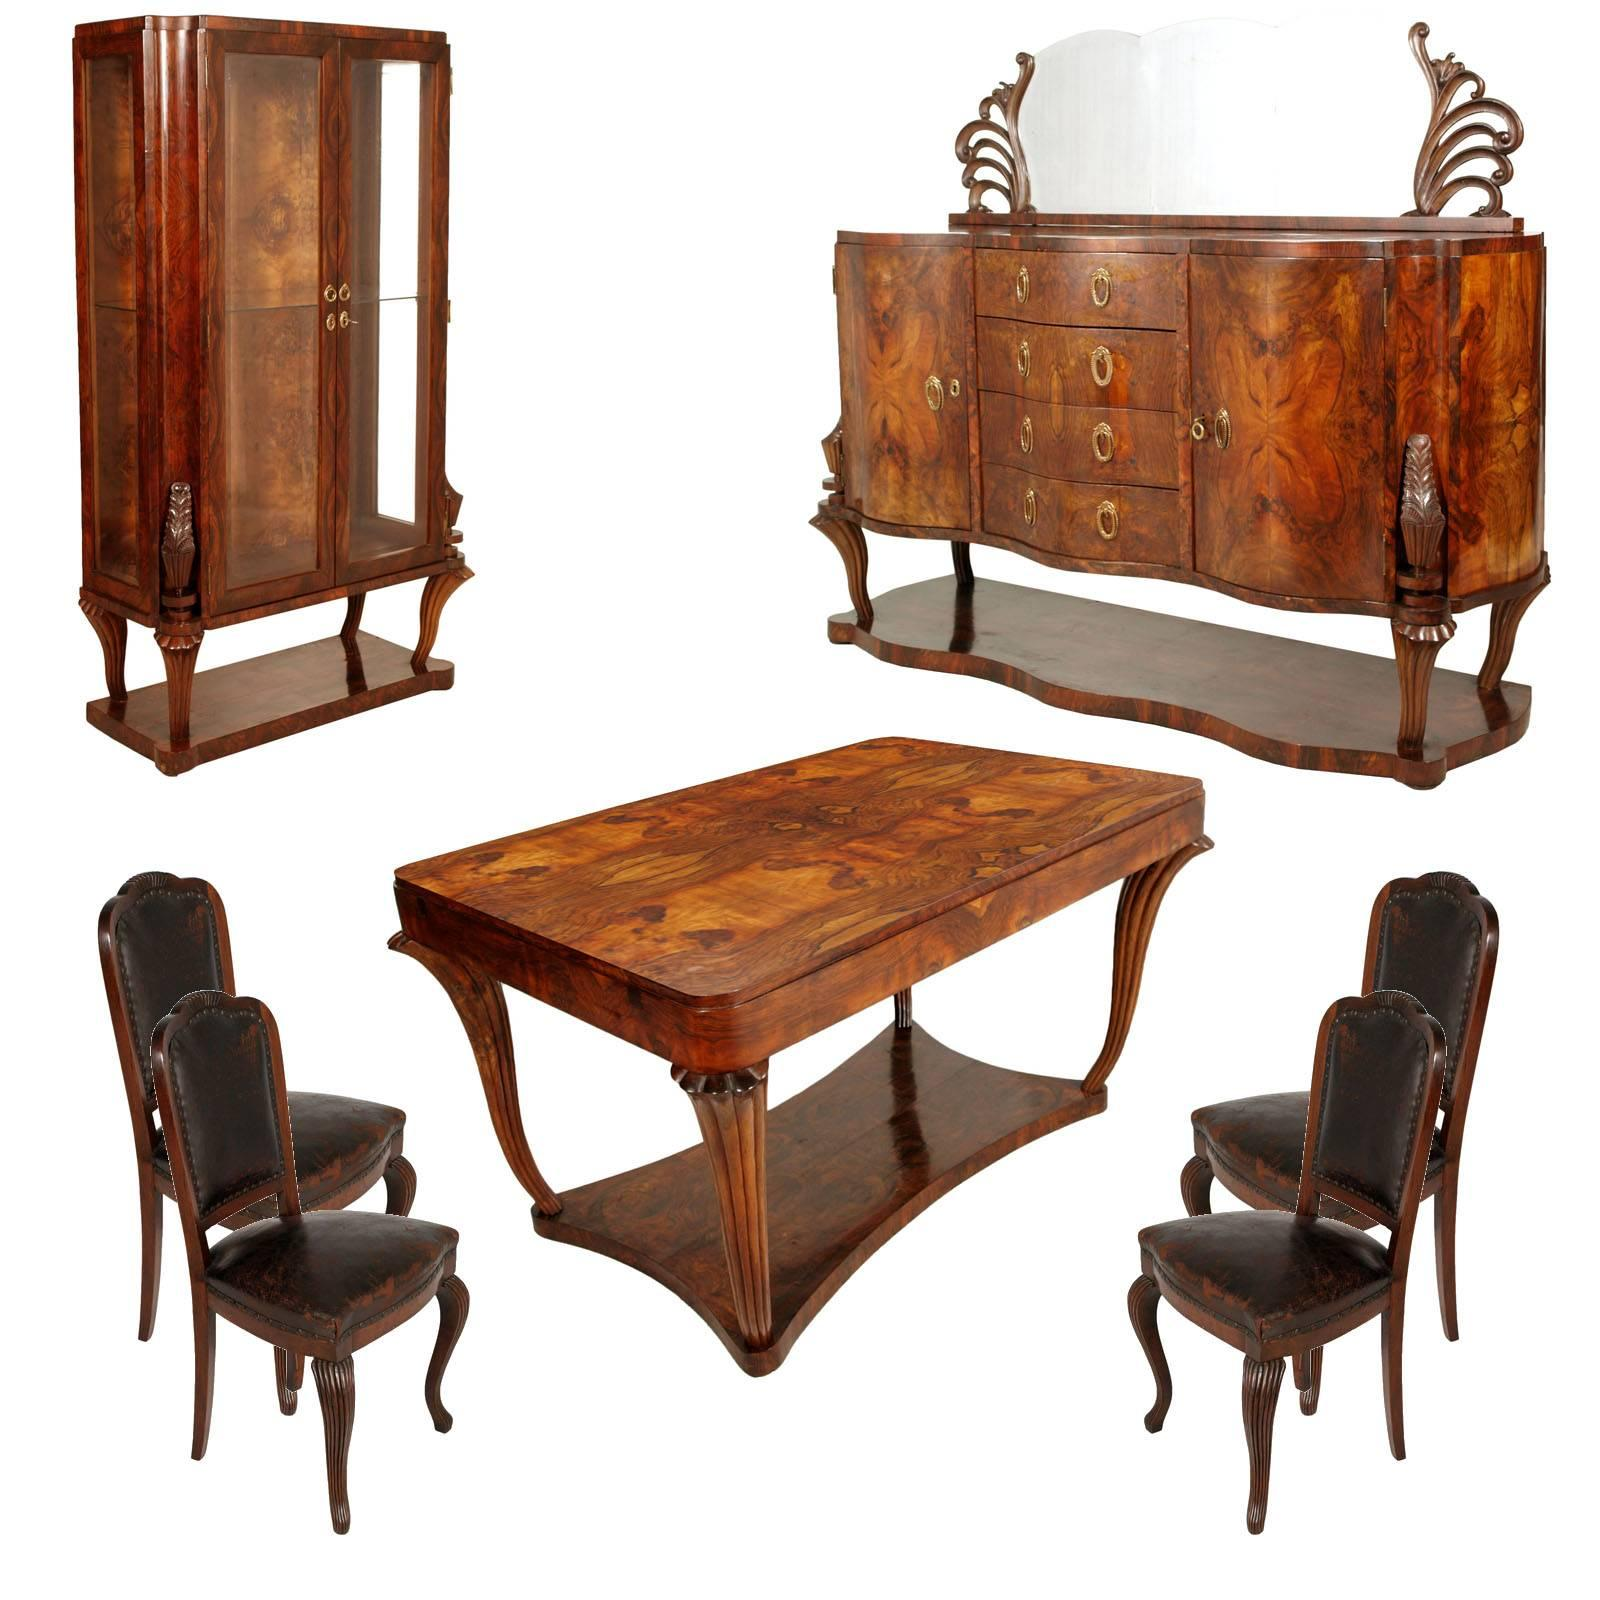 1920s Testolini U0026 Salviati Venice Baroque Art Deco Dining Room Set Burl  Walnut